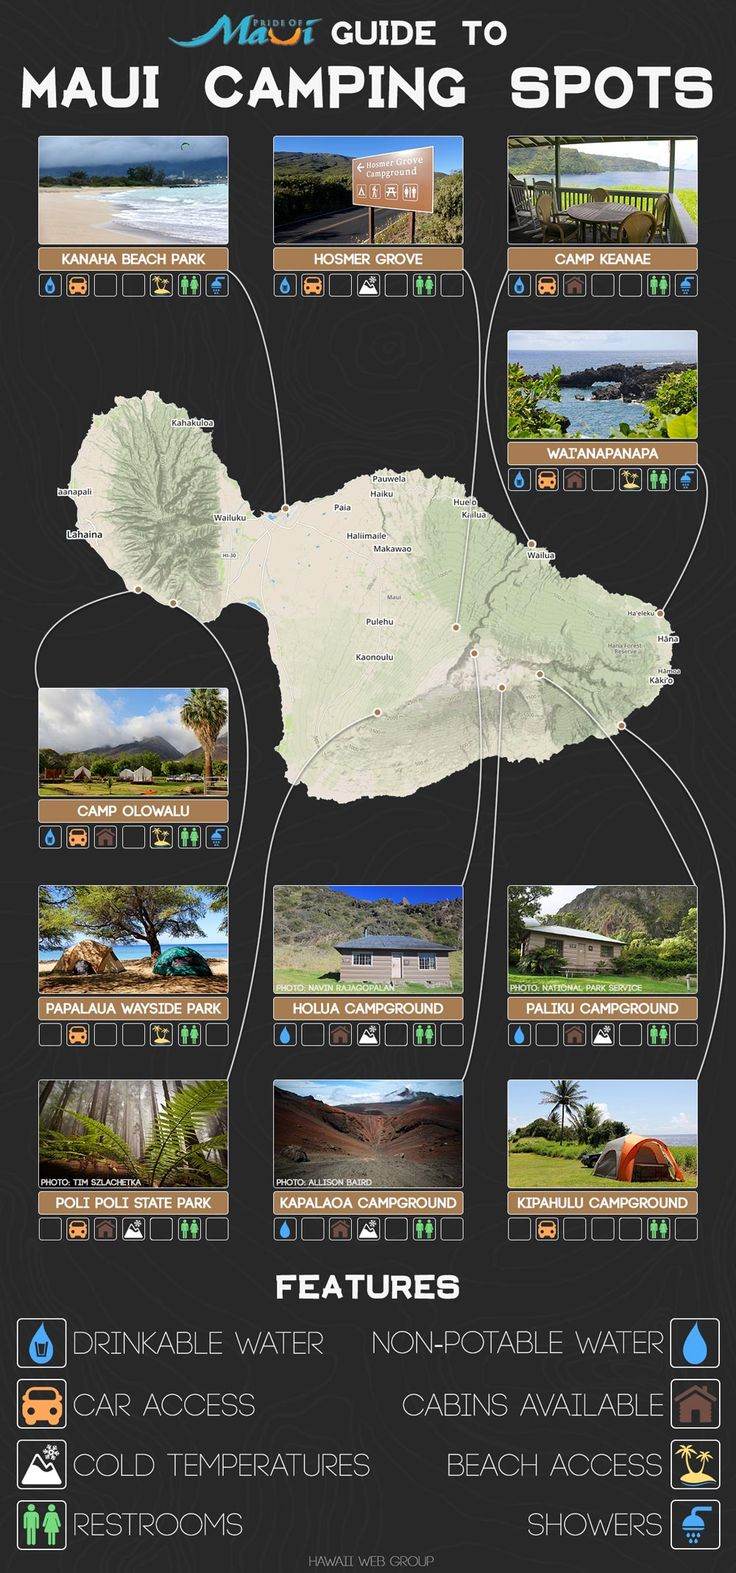 A Complete List of Maui Camping Spots: http://www.prideofmaui.com/blog/maui/complete-list-maui-camping-spots.html